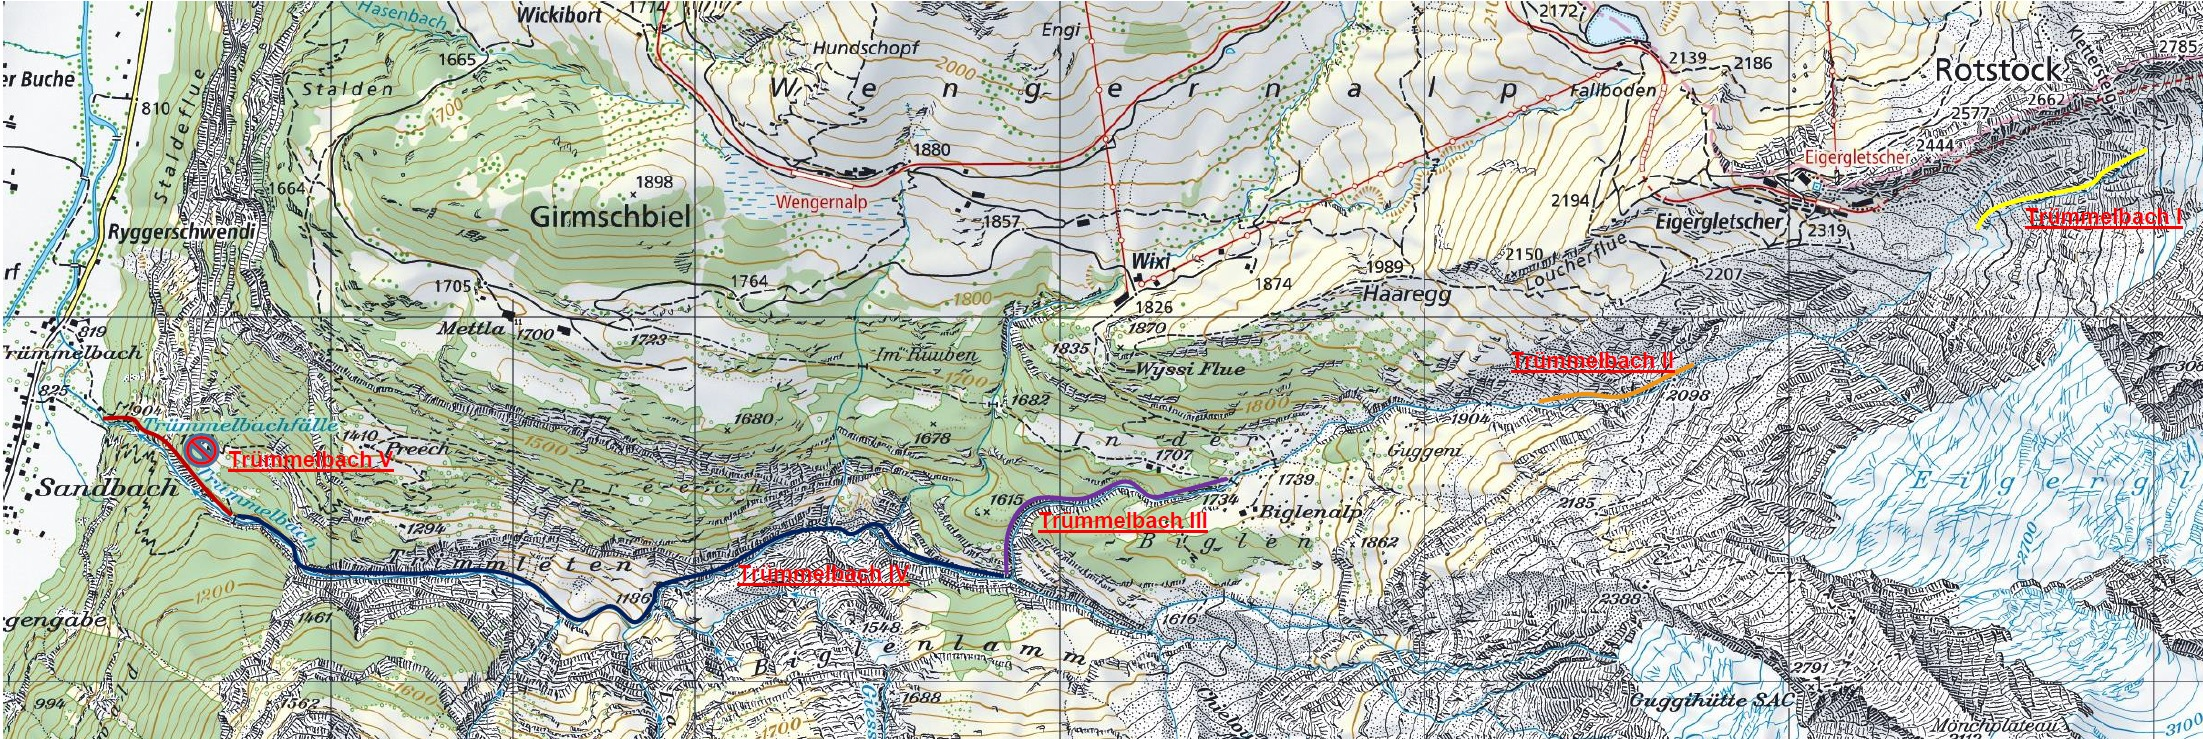 trummelbach-the-connection-map